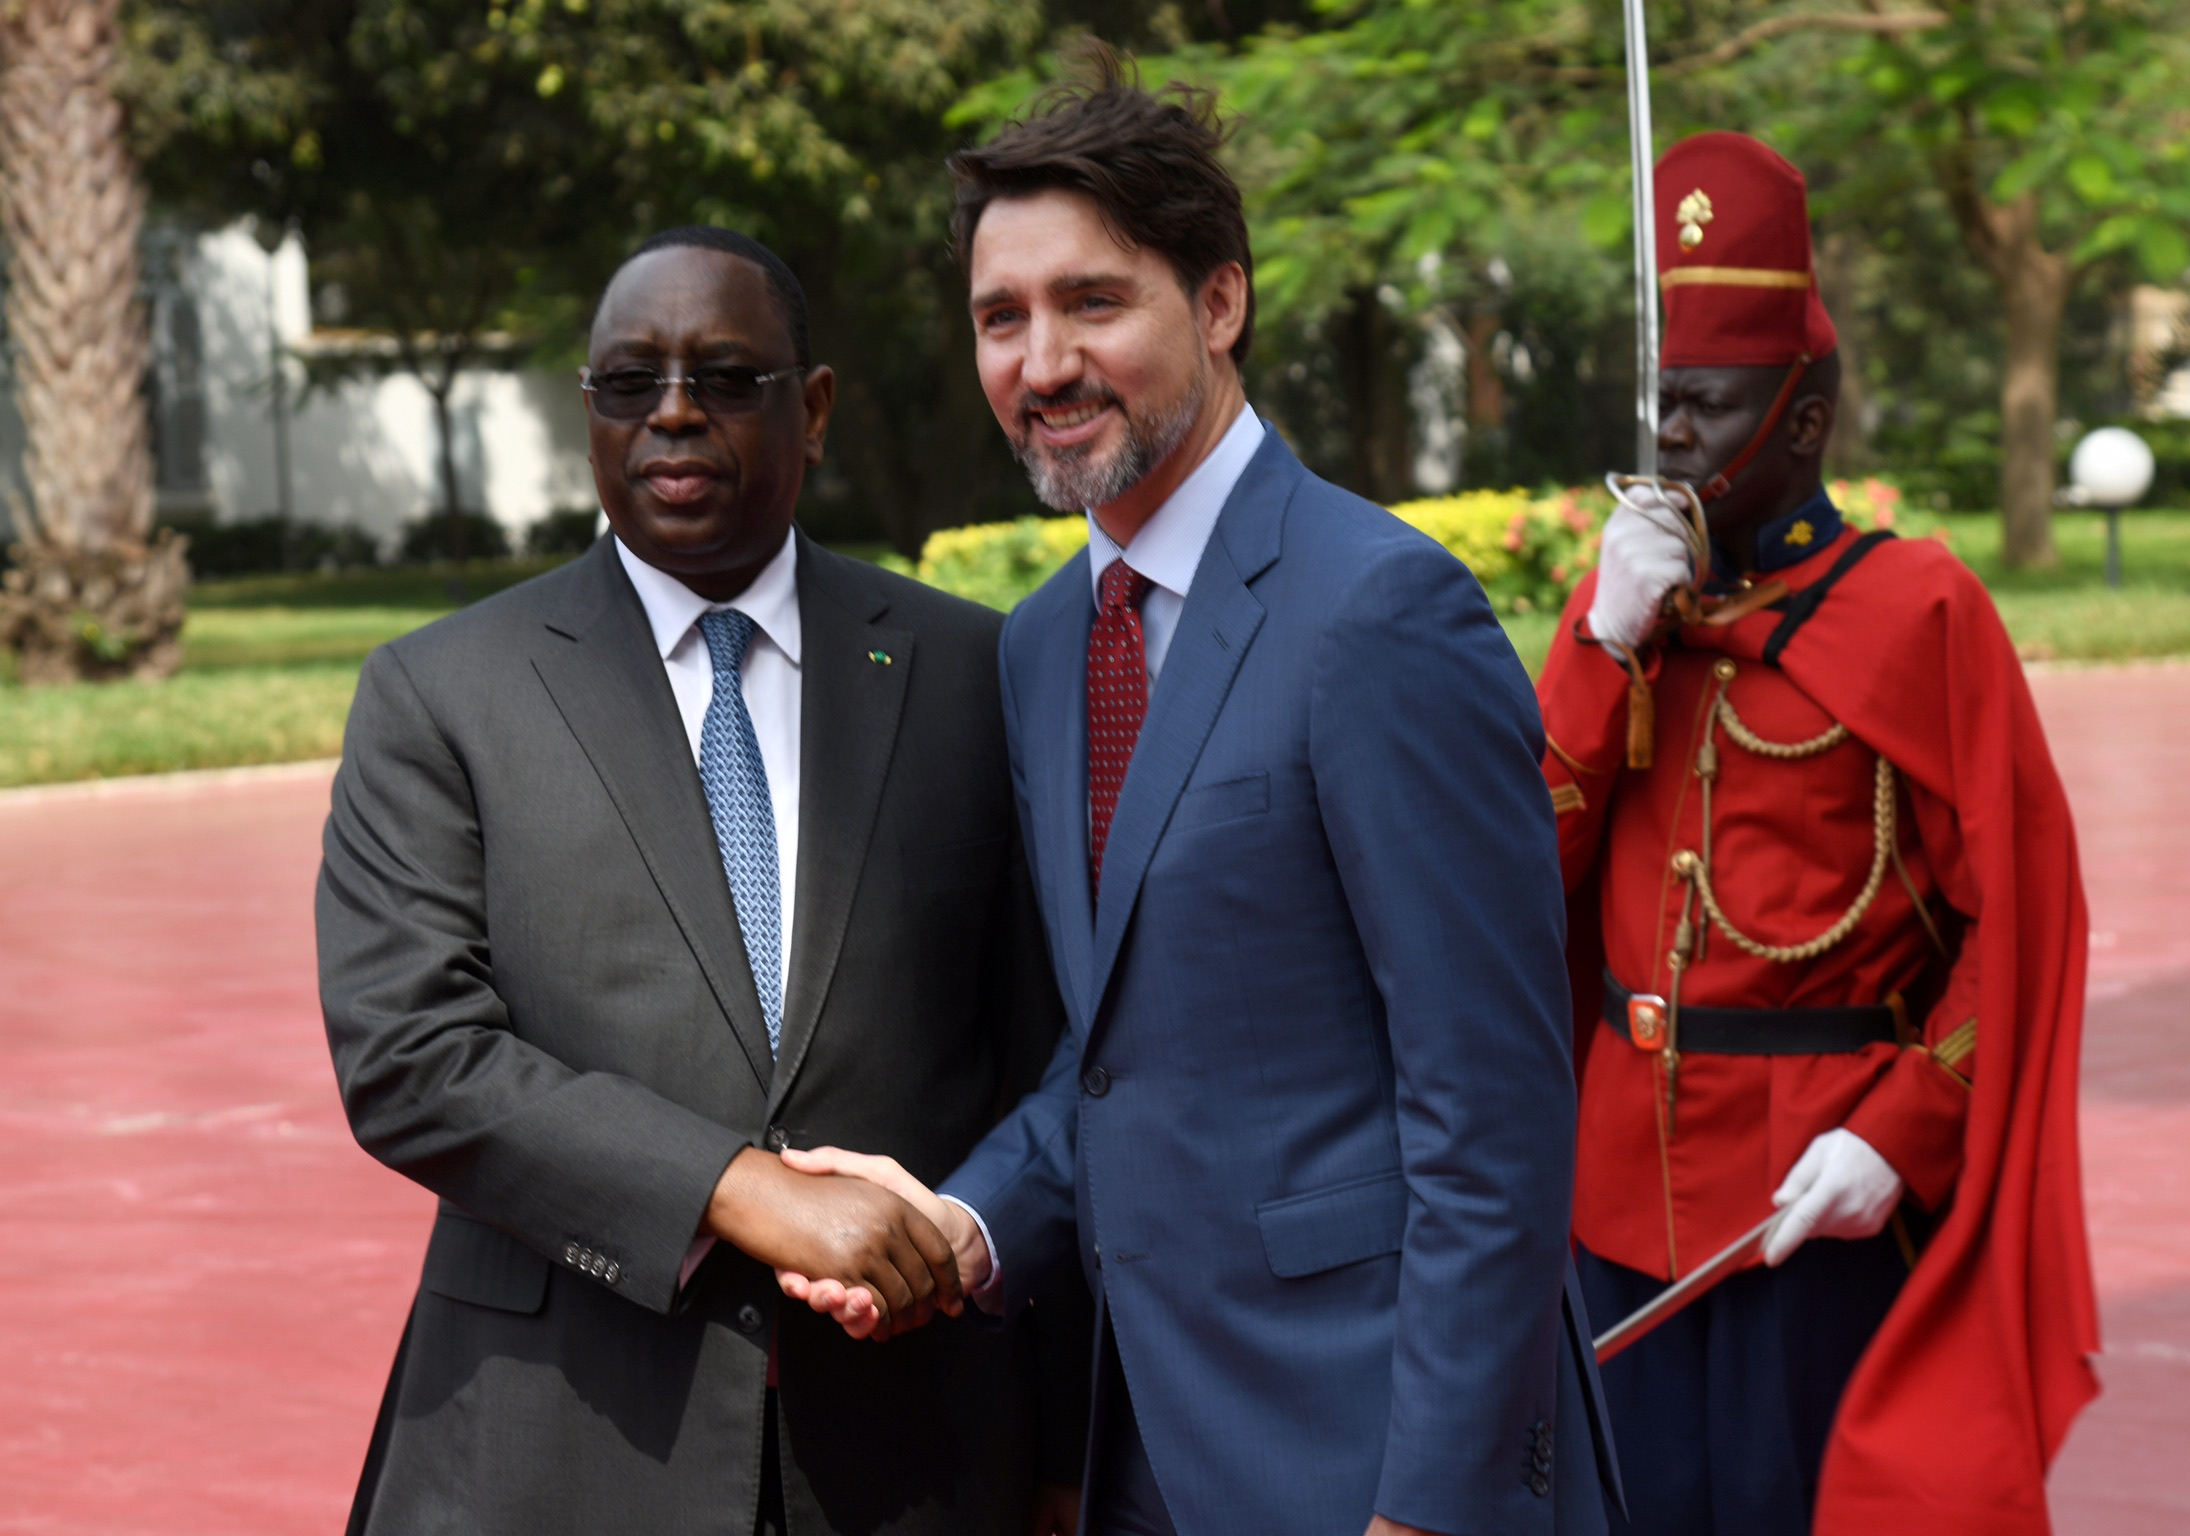 Senegal's President Macky Sall welcomes Canada's Prime Minister Justin Trudeau at the presidential palace in Dakar, Senegal February 12, 2020. REUTERS/Moustafa Cheaiteli